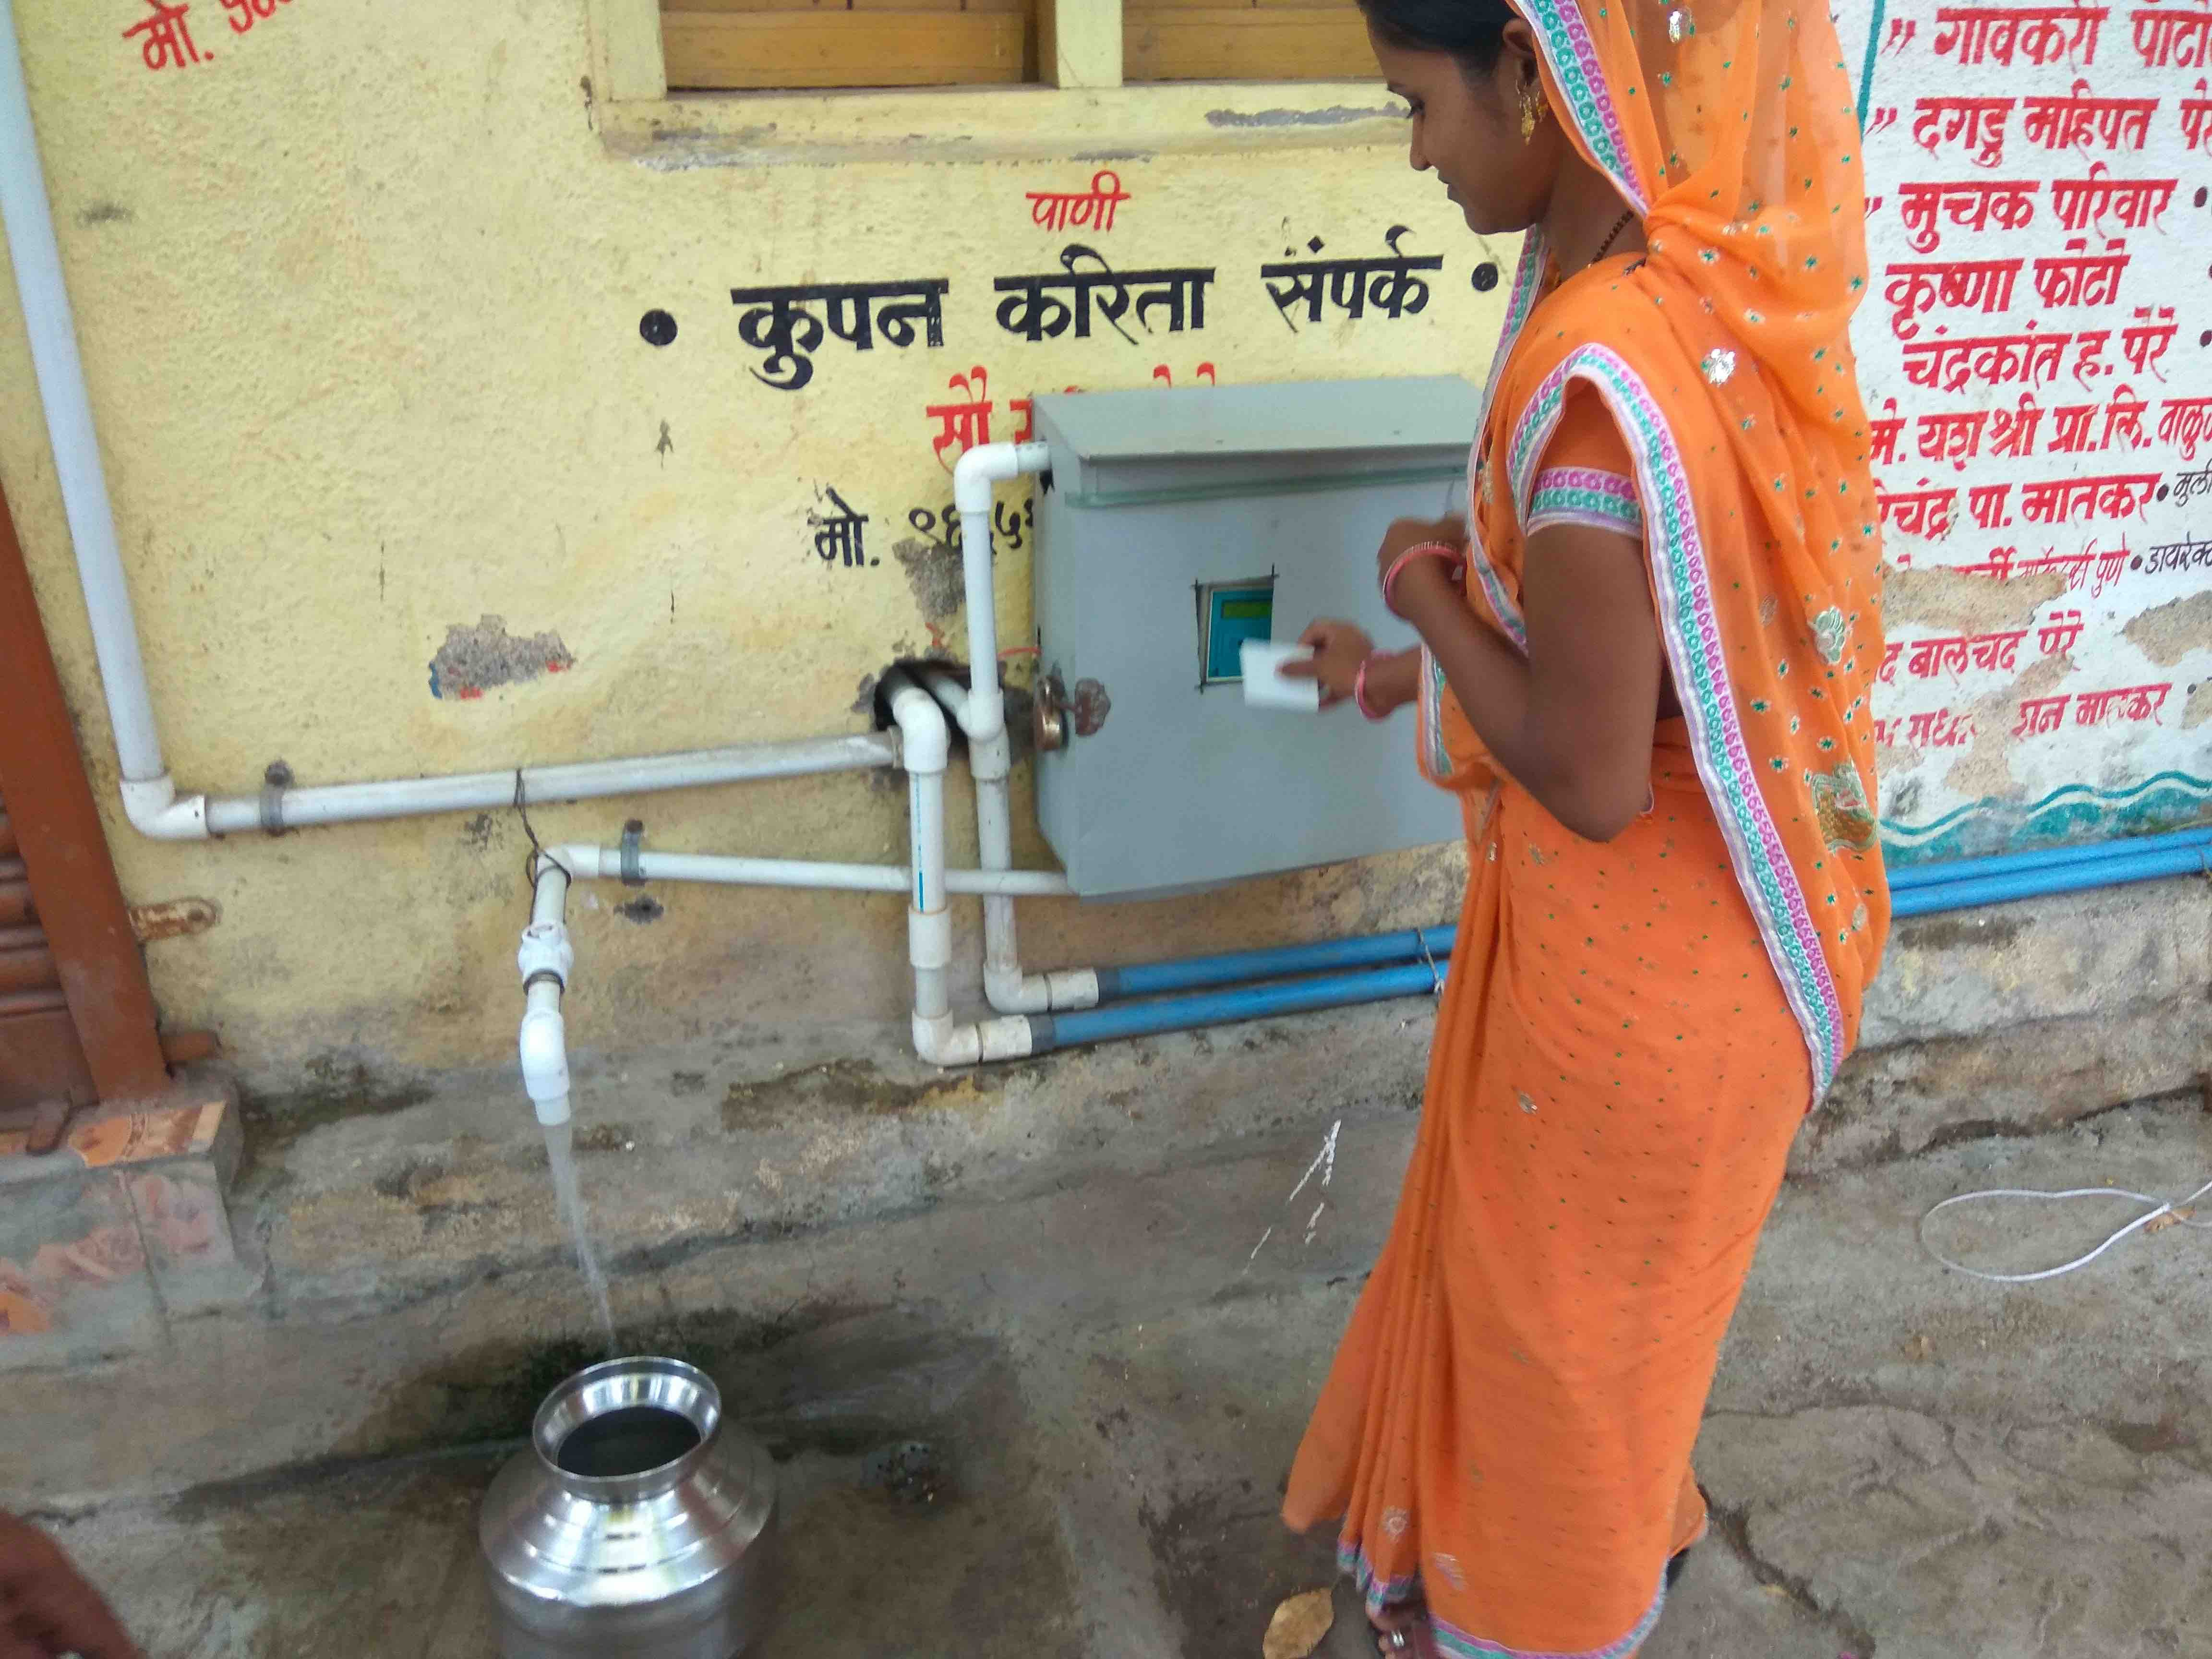 A resident of Patoda village, outside Aurangabad, uses her 'ATM card' to fill a pot with purified drinking water. Credit: Raghu Karnad